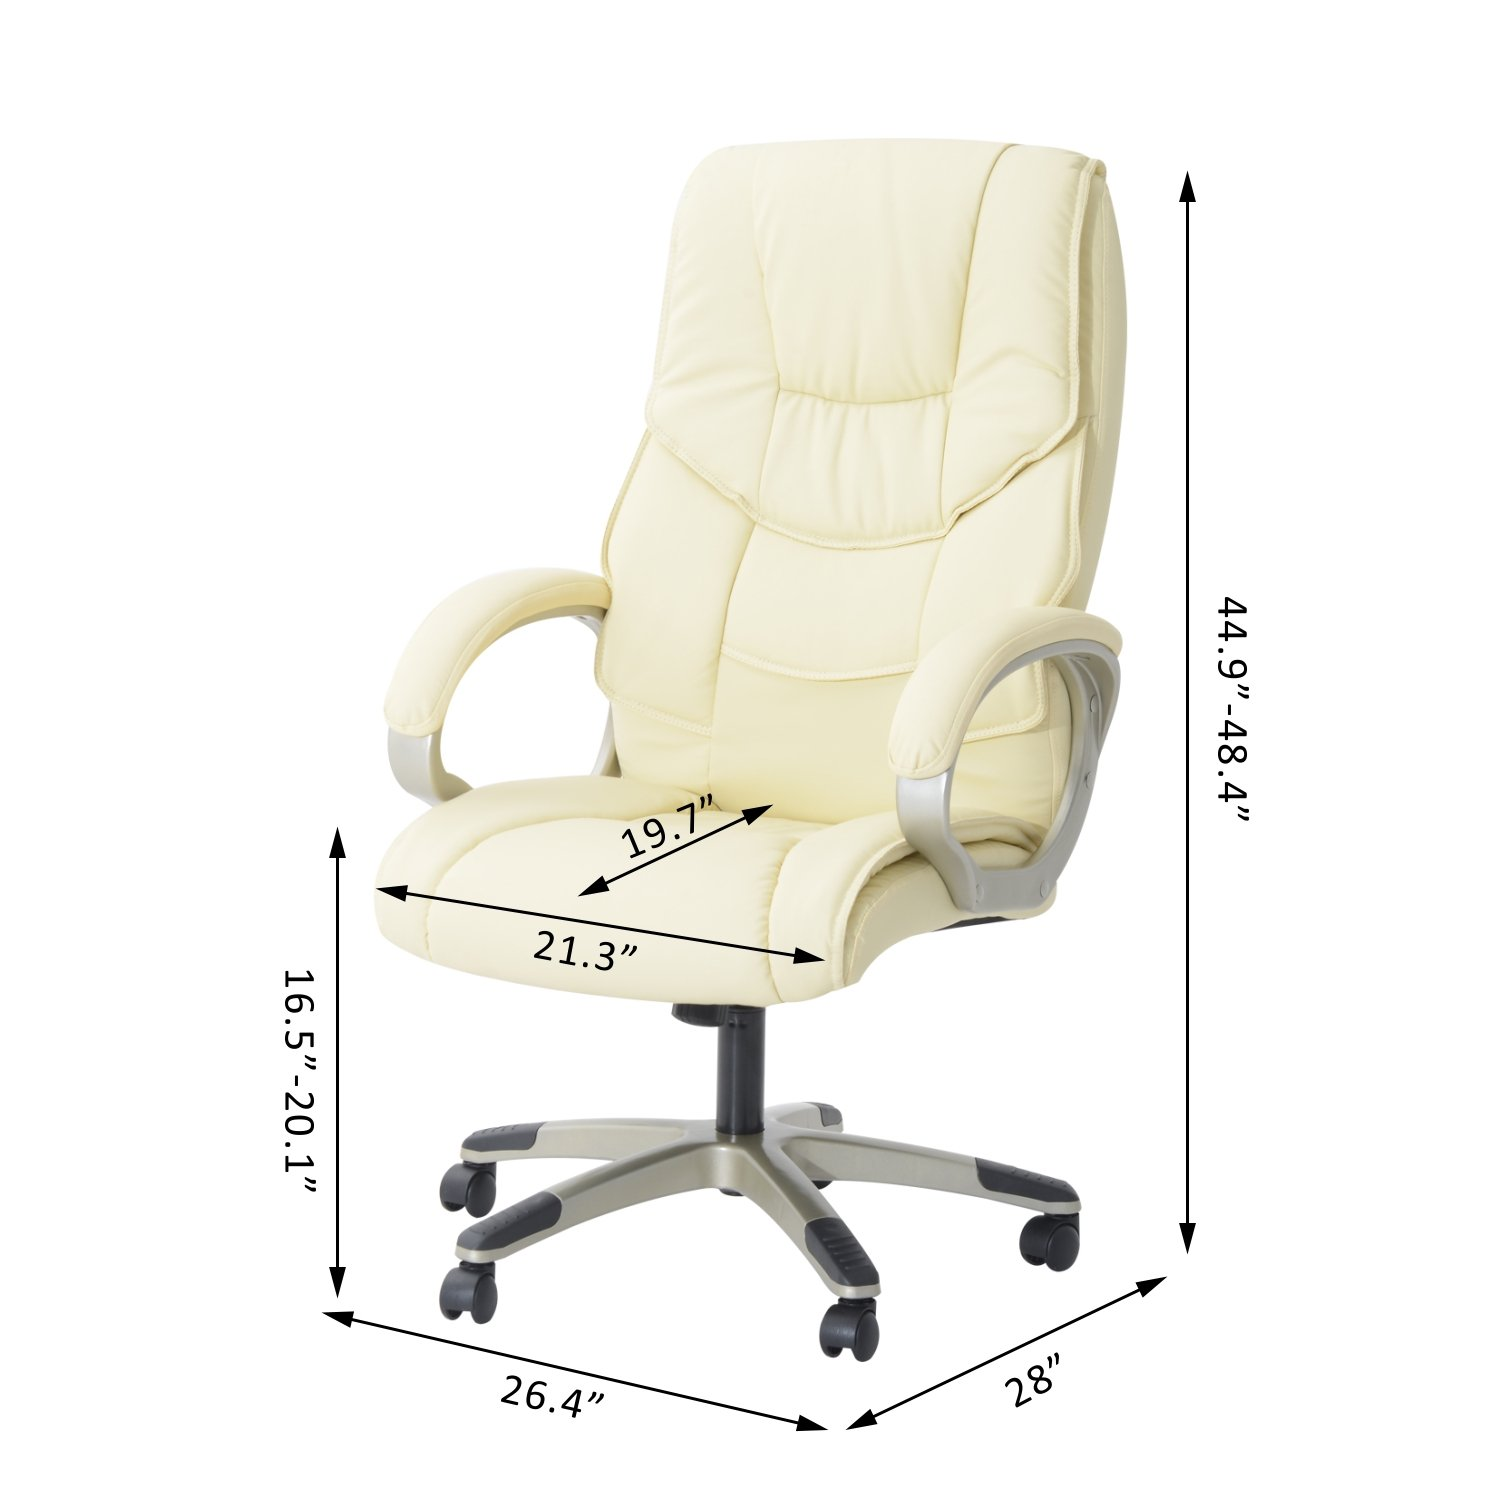 HOM Executive fice Chair High Back PU Leather puter PC